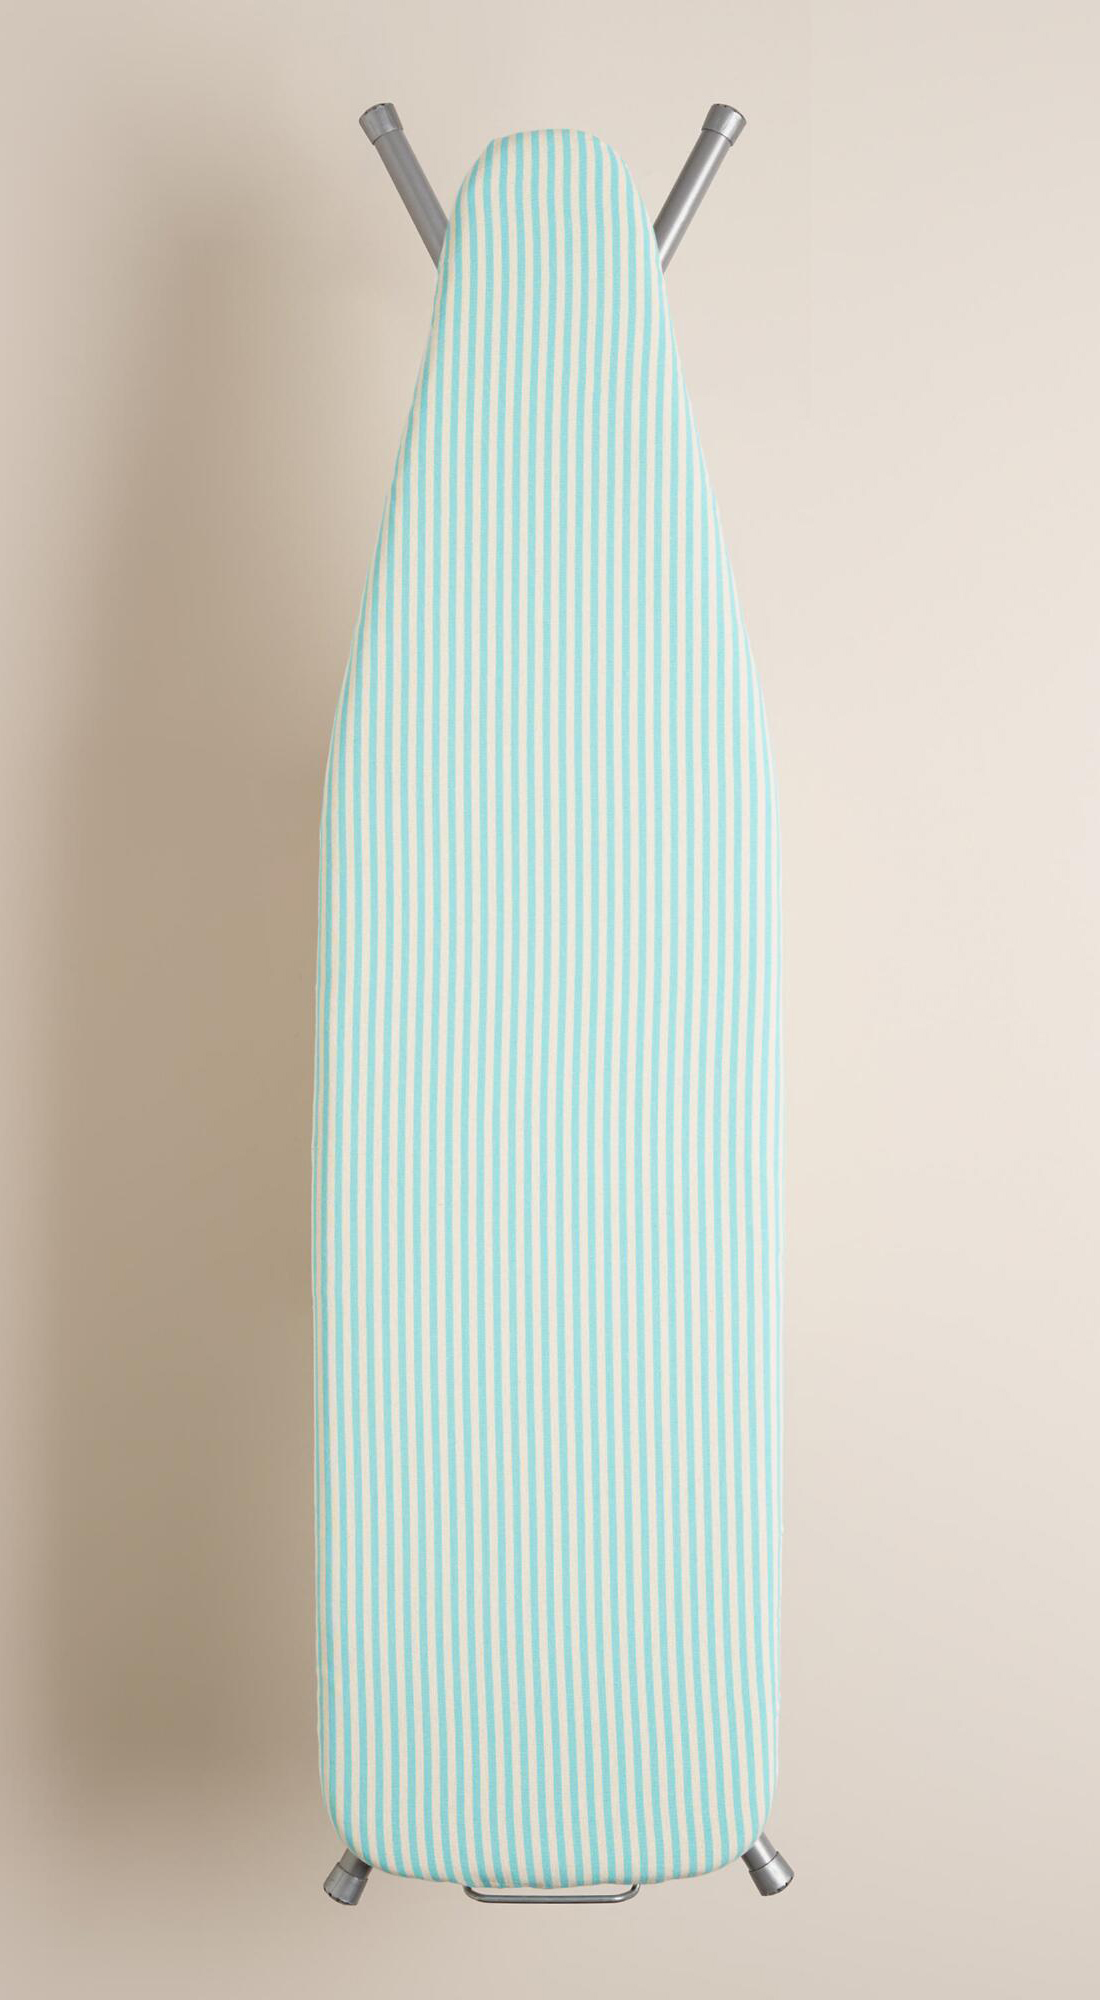 Aqua Ticking Stripe Ironing Board Cover